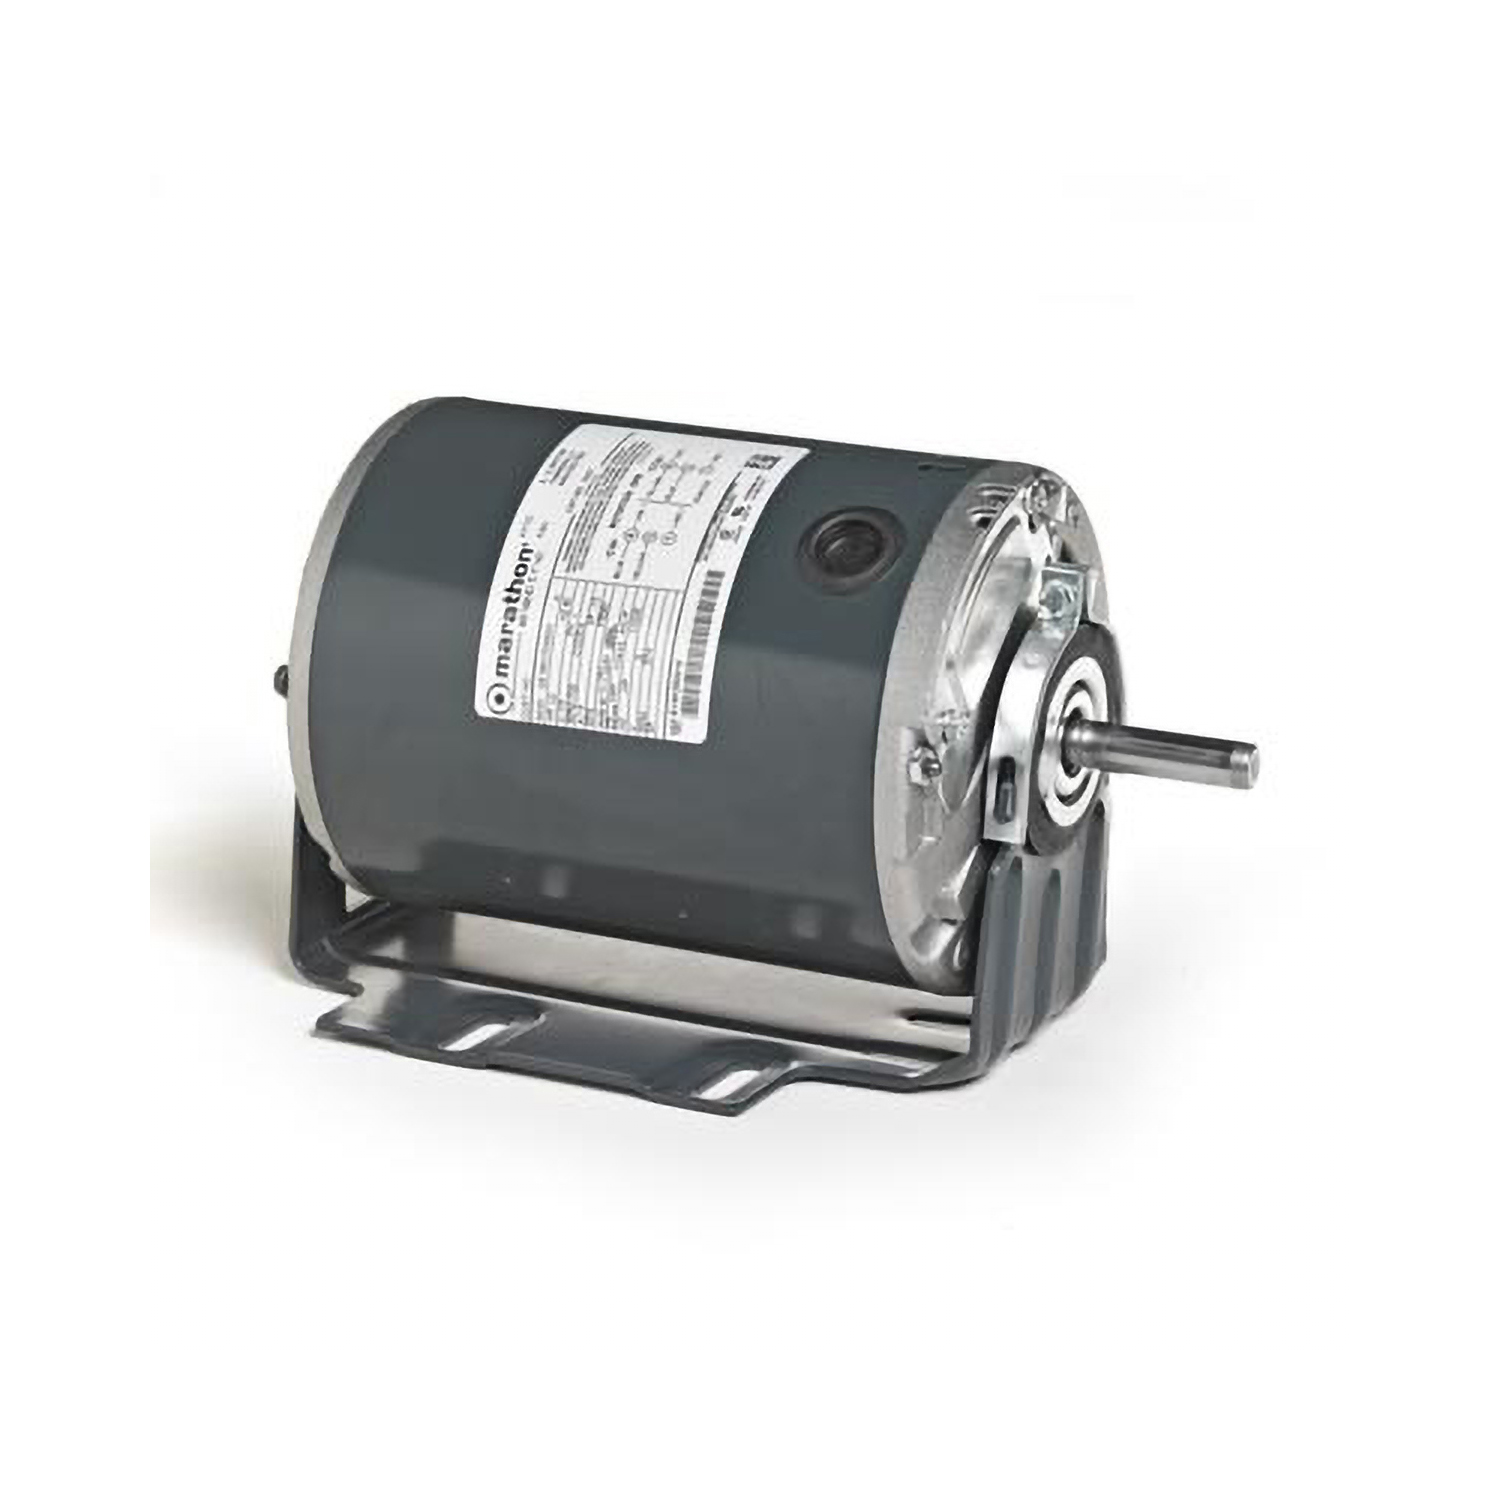 hight resolution of 56y frame split phase attic fan motor 1 2 hp 1725 rpm 115 volts packard online